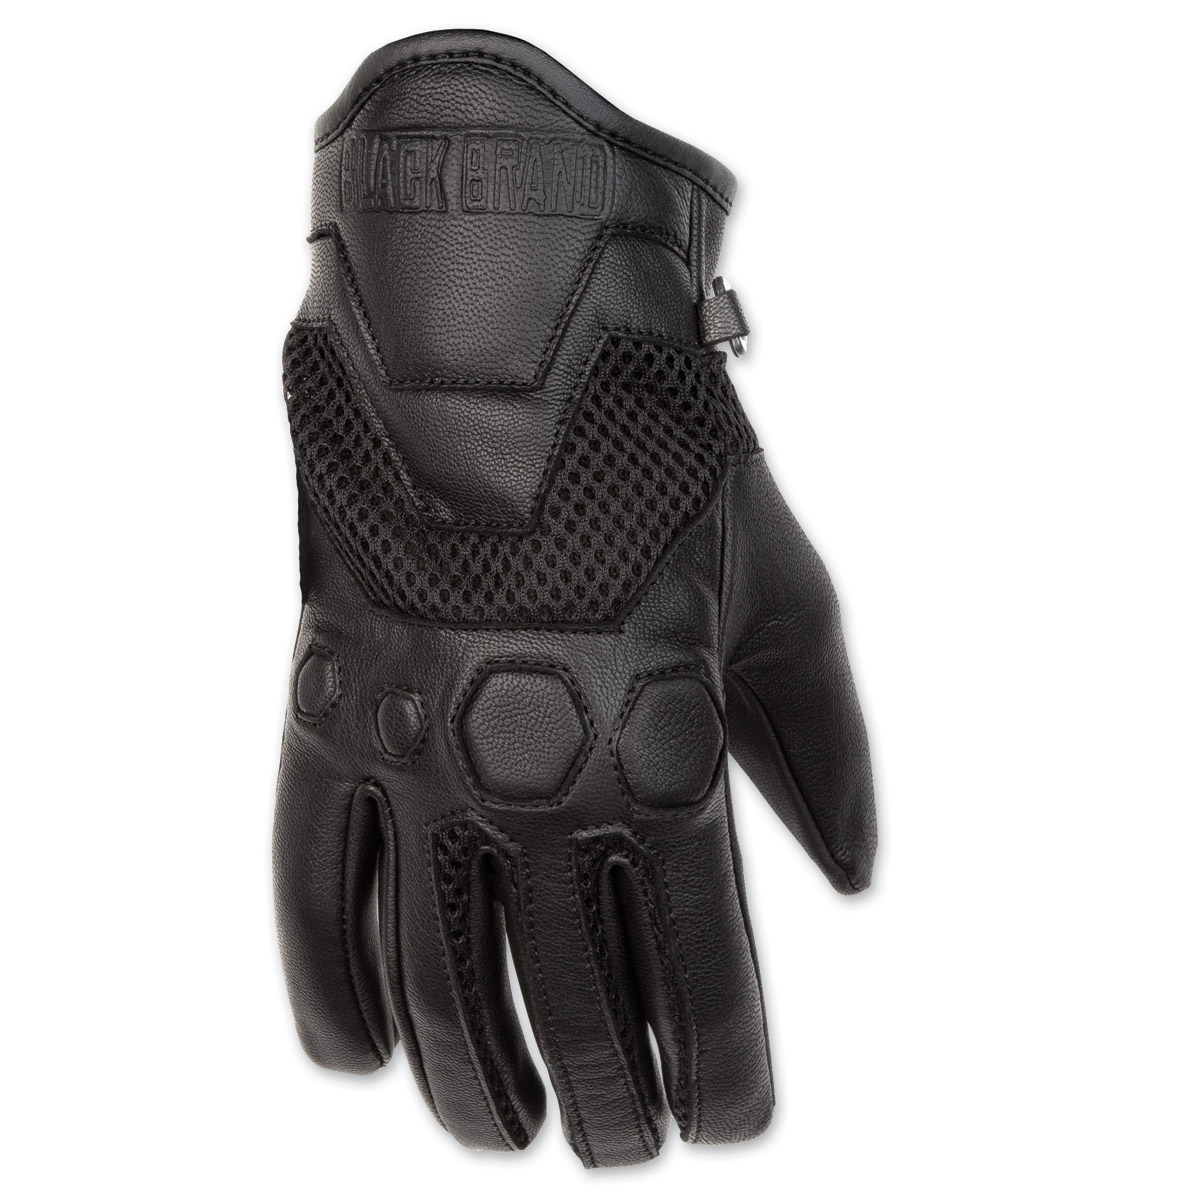 Black Brand Women's RIder Black Mesh/Leather Gloves